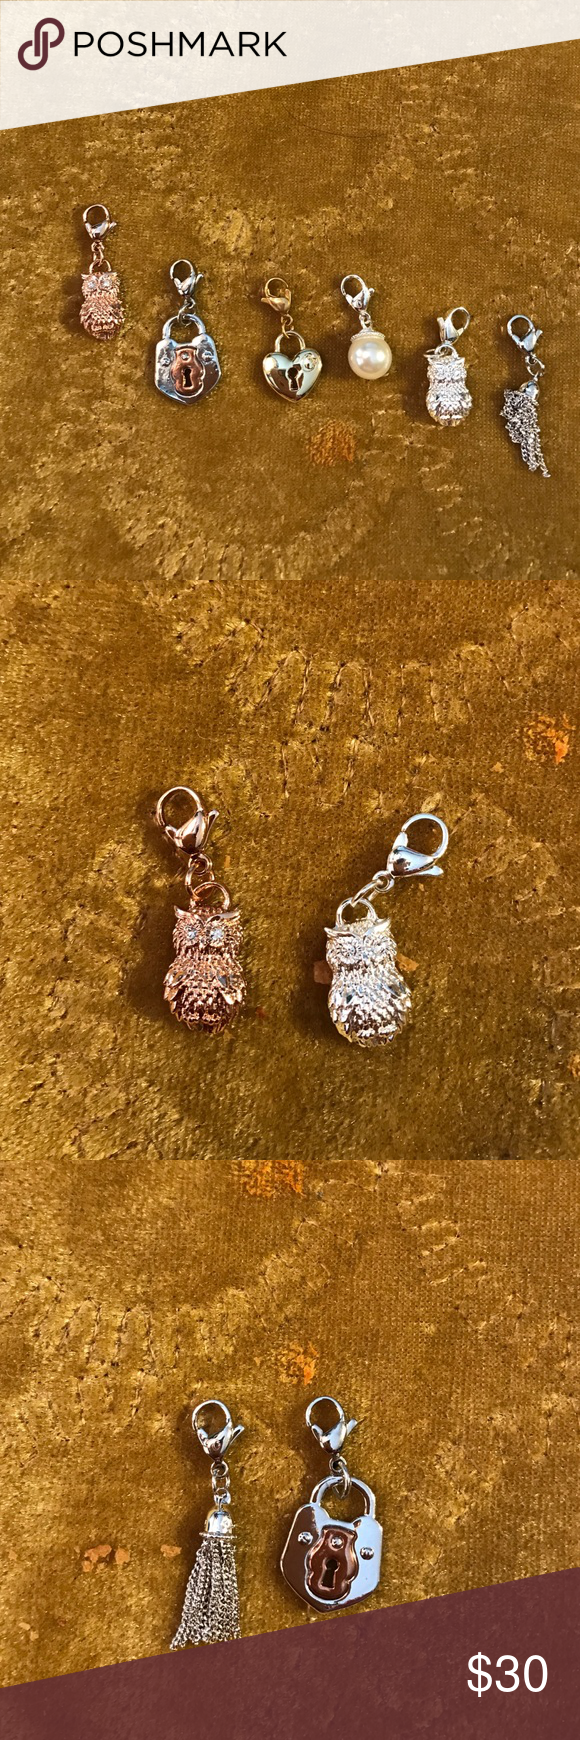 Selling this Origami Owl dangles on Poshmark! My username is: lmh1965. #shopmycloset #poshmark #fashion #shopping #style #forsale #origami owl #Jewelry